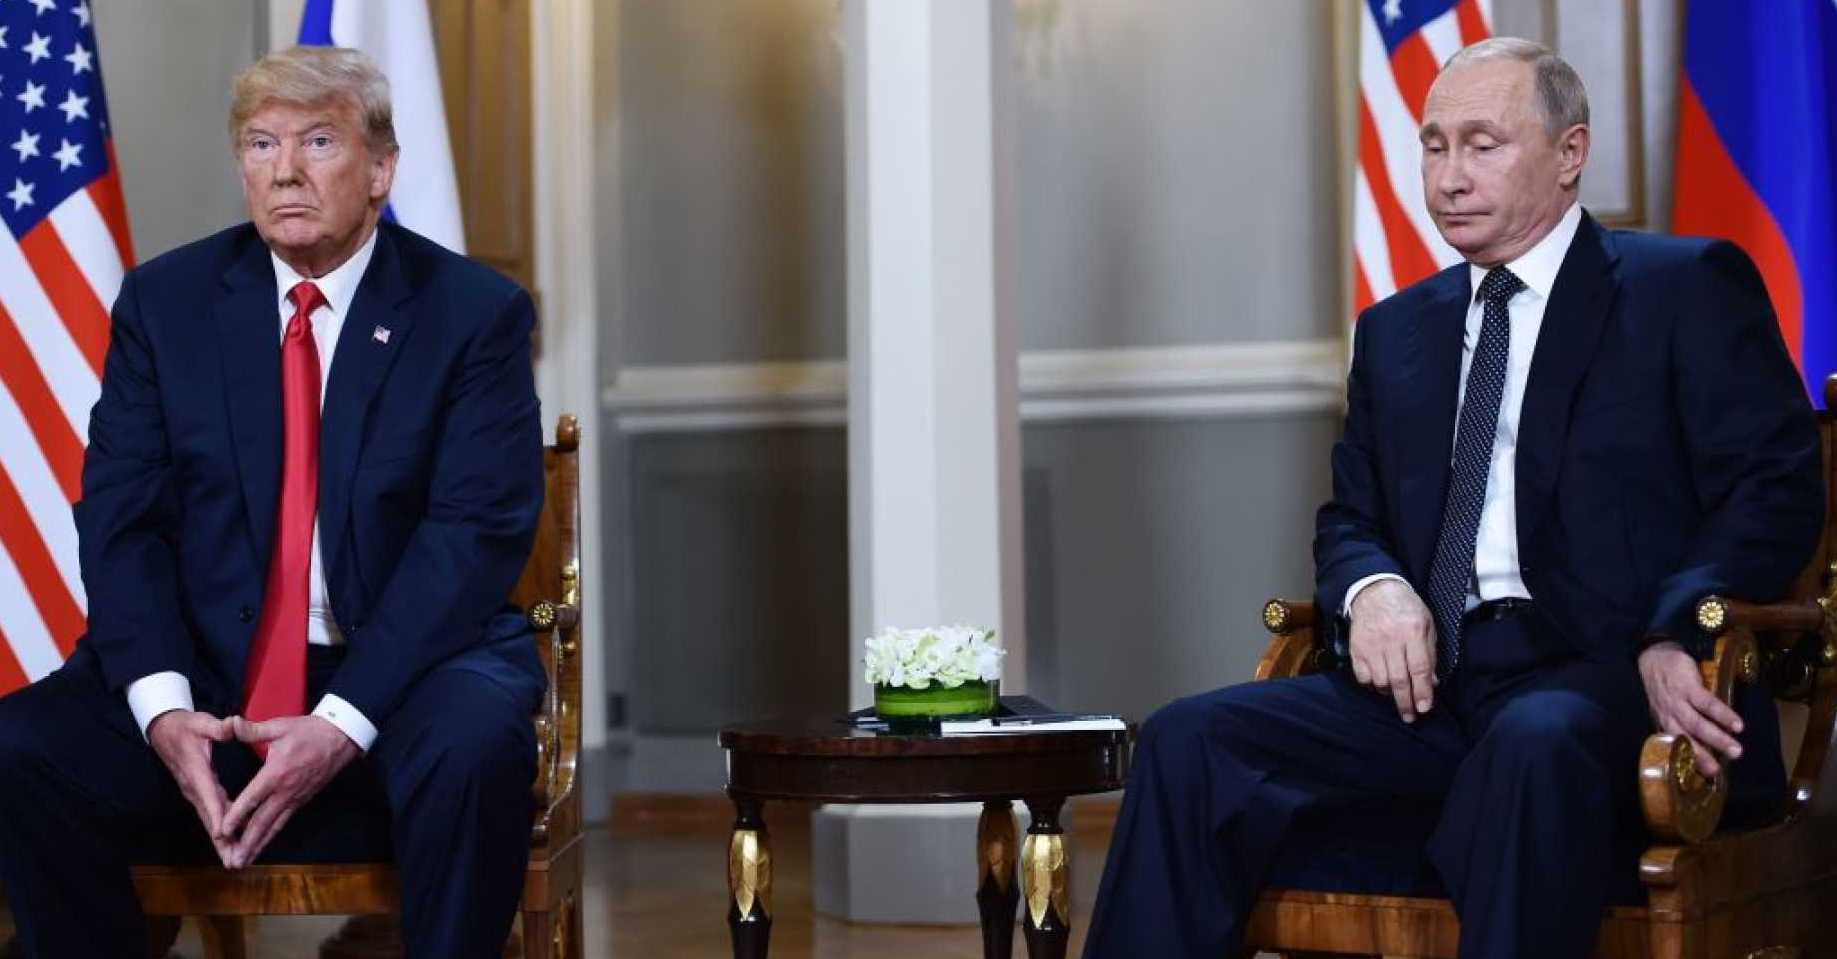 Presidents Trump and Putin at the Helsinki summit in June of this year ( Image )